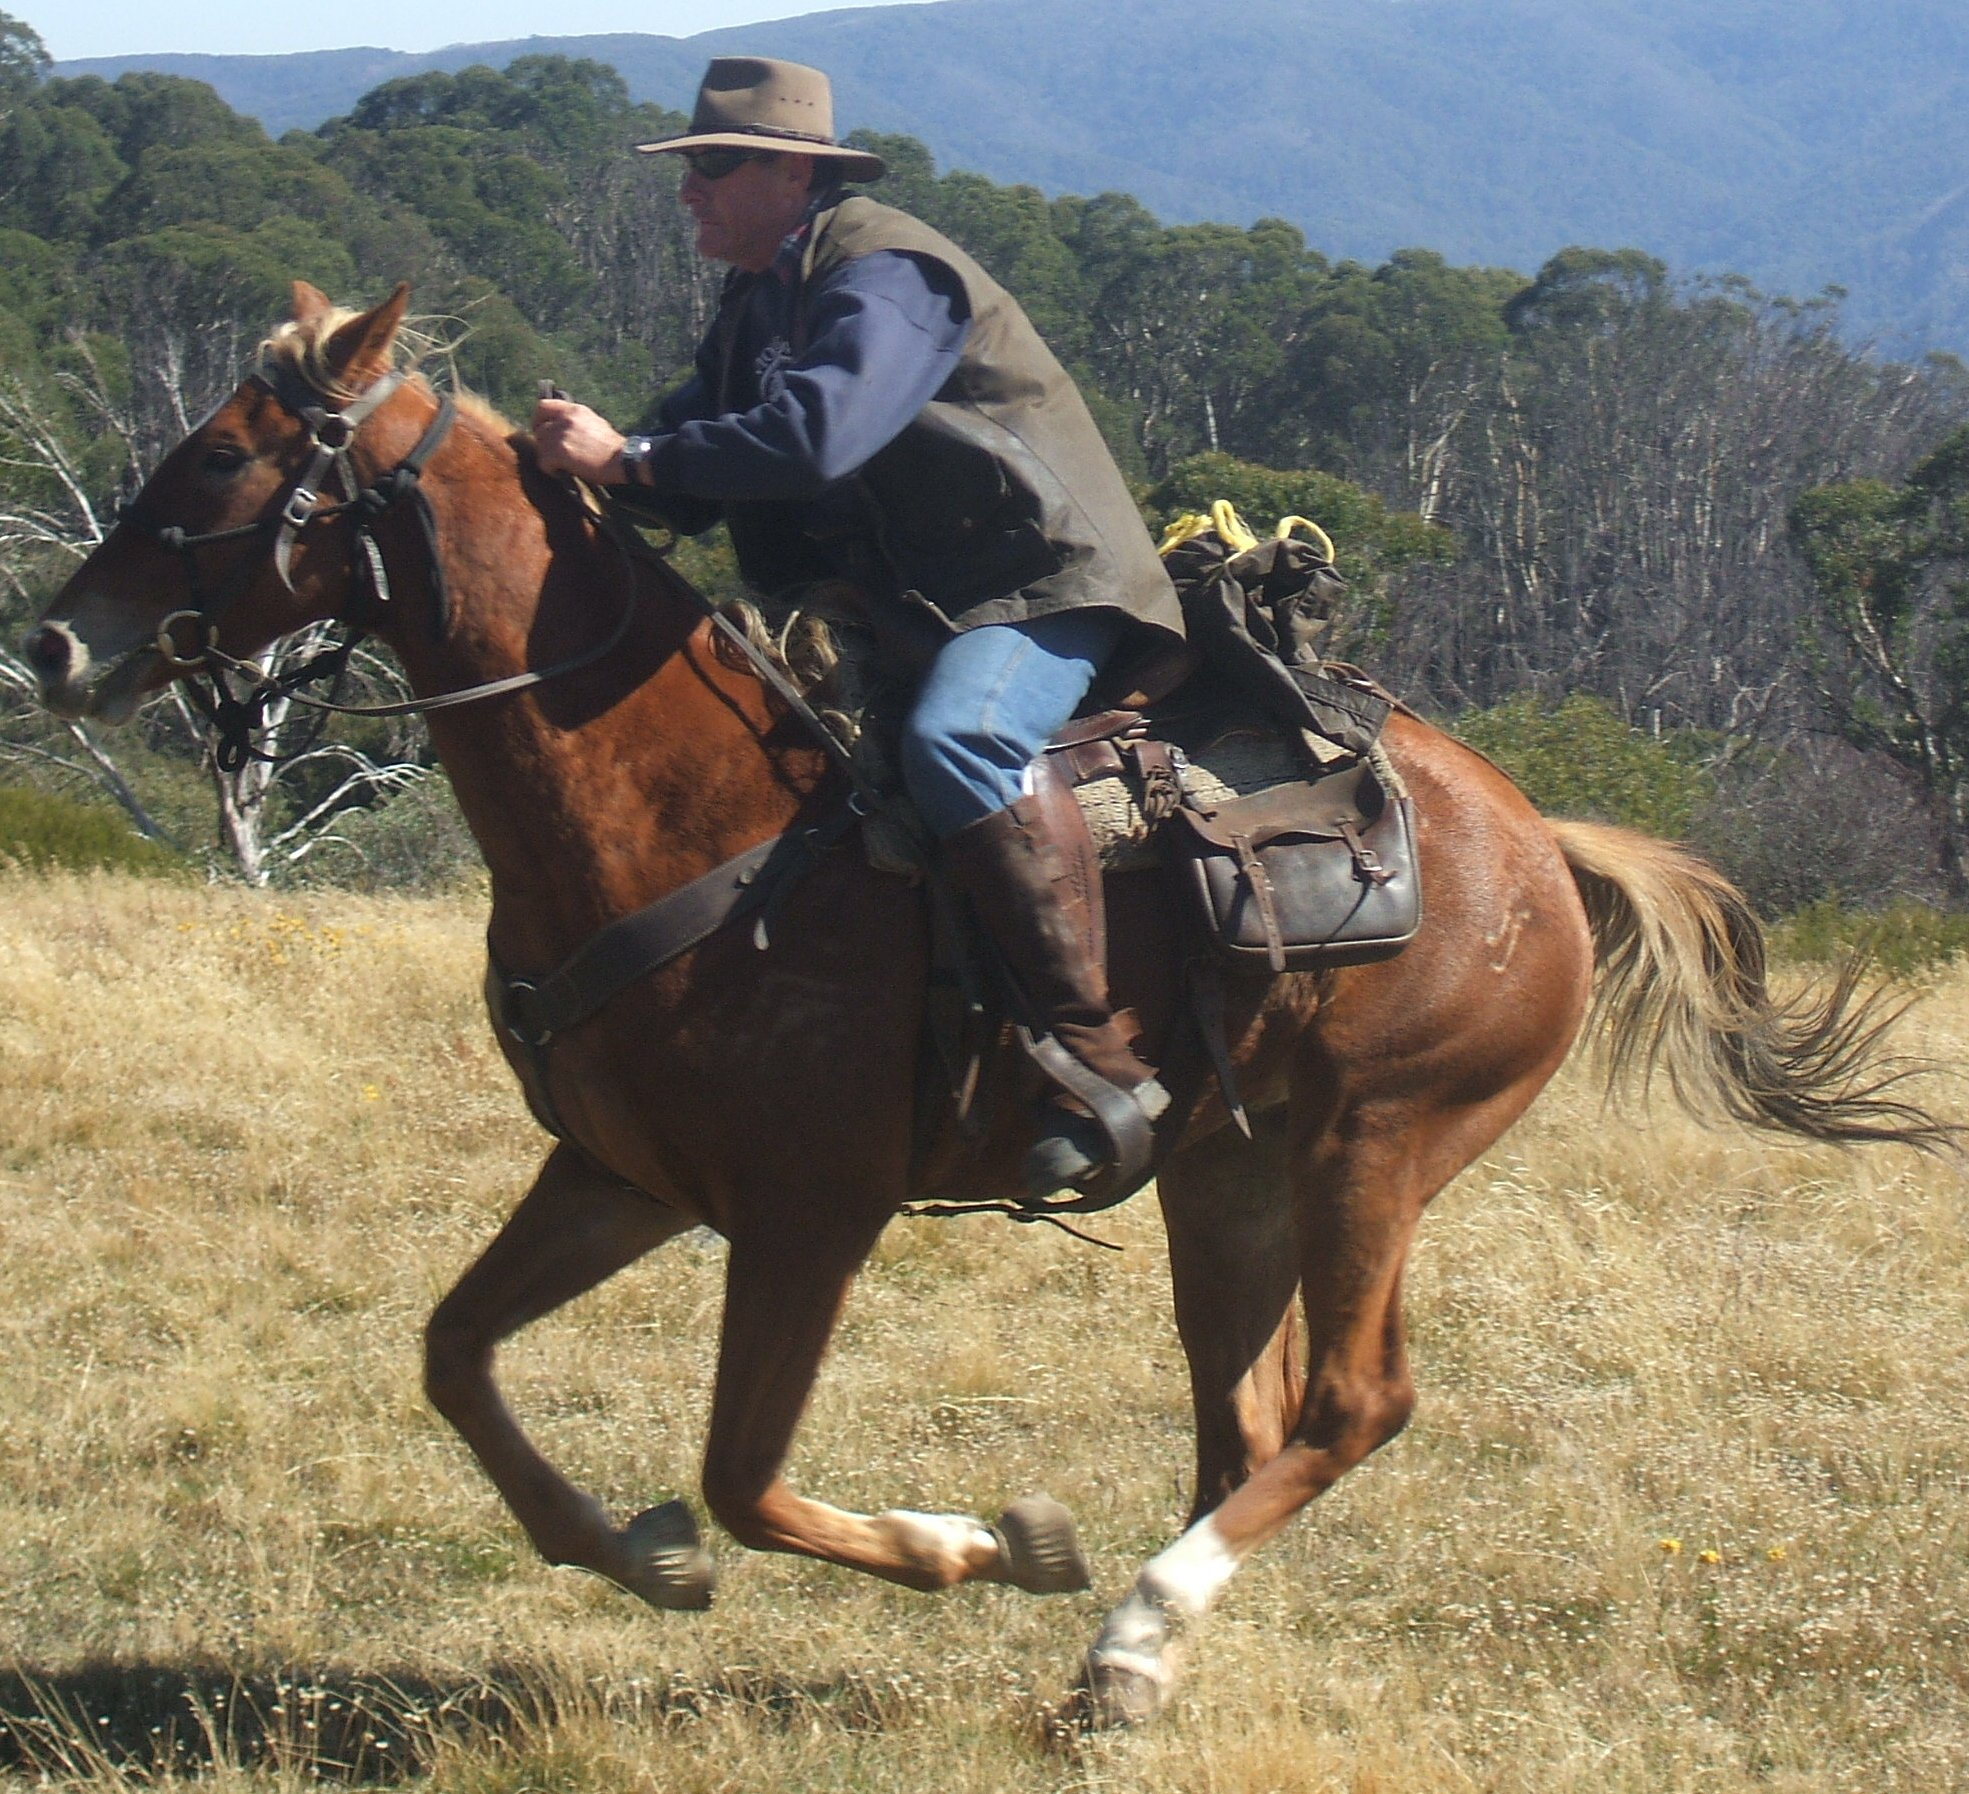 Go Jeff go - taking on The Man From Snowy River @ Crag's Hut